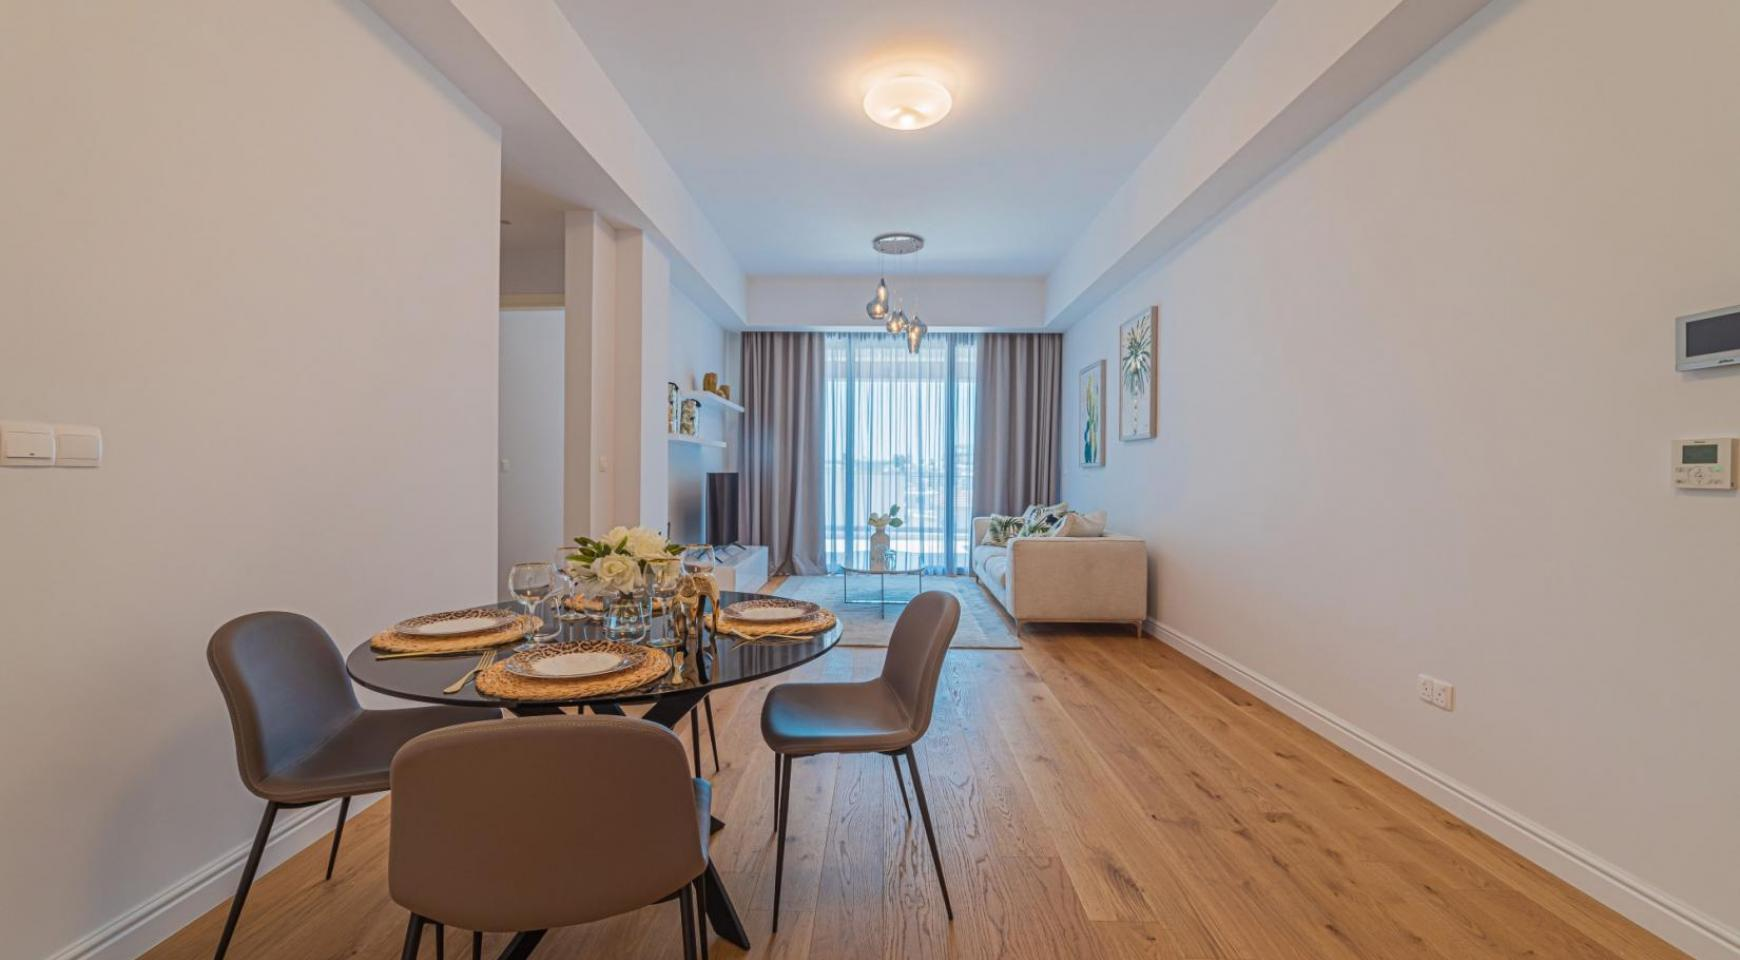 Hortensia Residence, Apt. 302. 2 Bedroom Apartment within a New Complex near the Sea  - 57